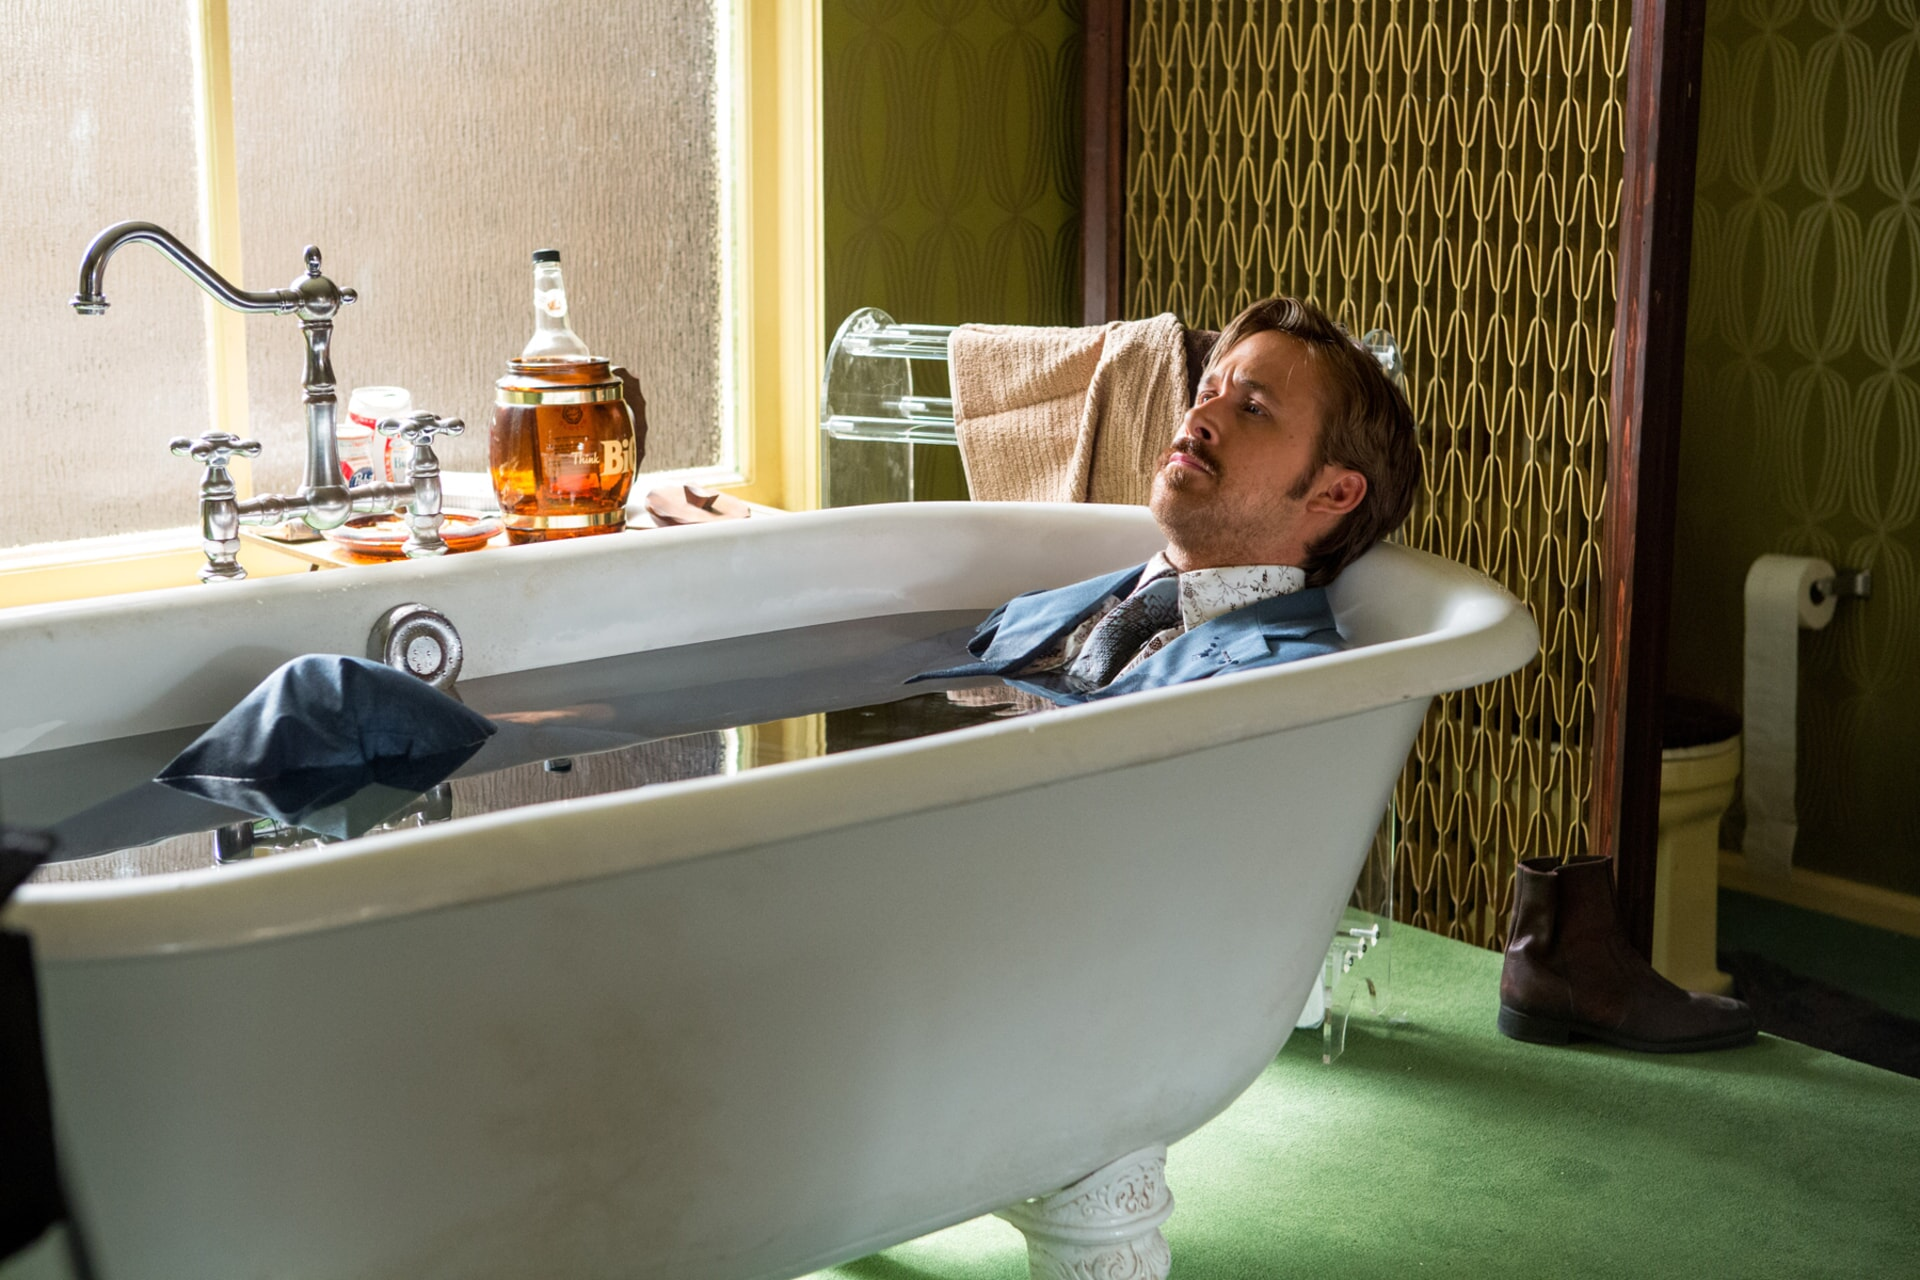 RYAN GOSLING as Holland March, wearing a blue 1970s suit, lying a bathtub